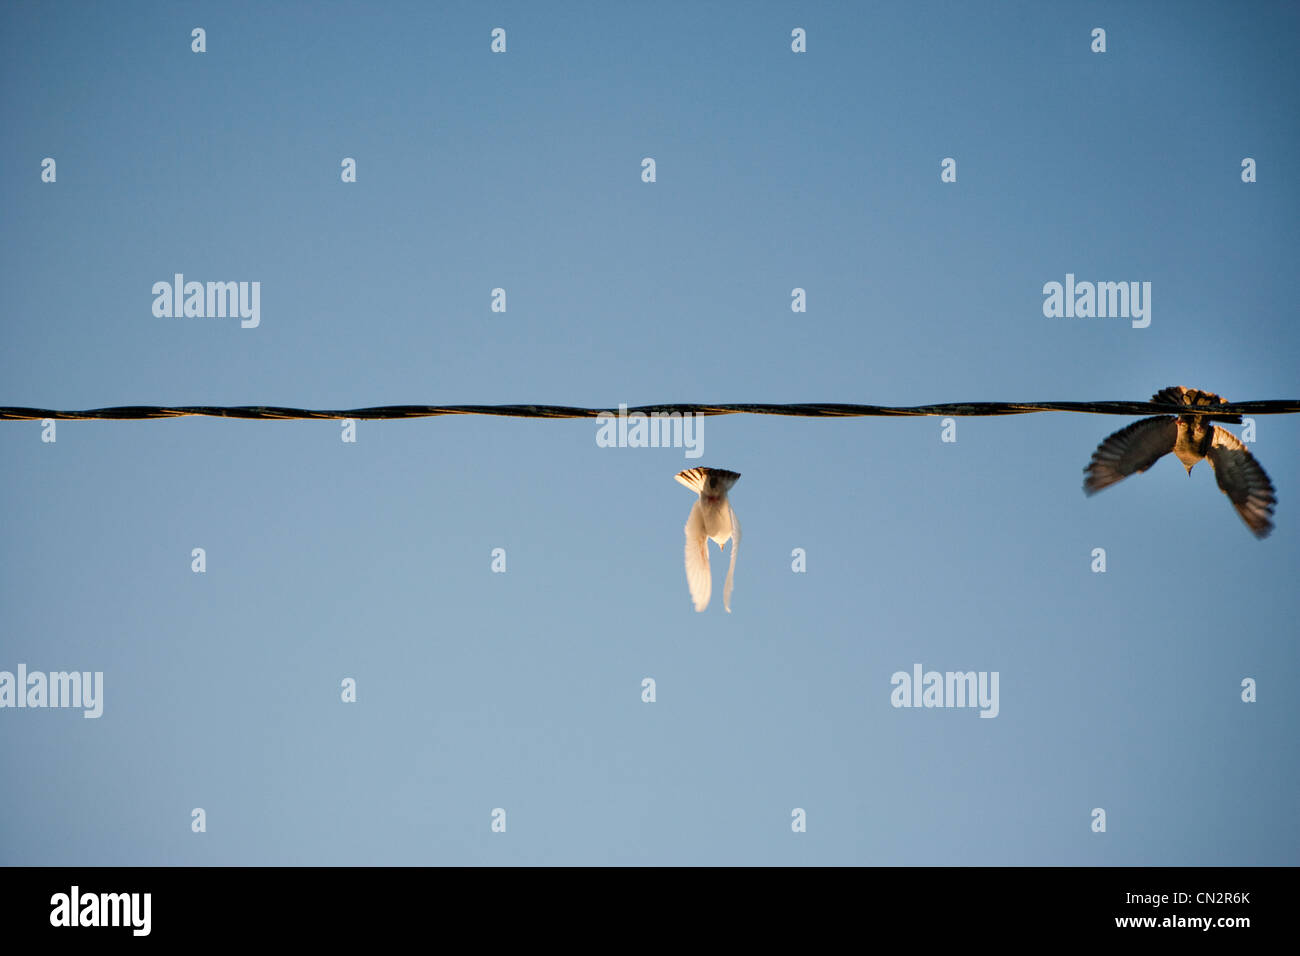 Birds flying from power line - Stock Image